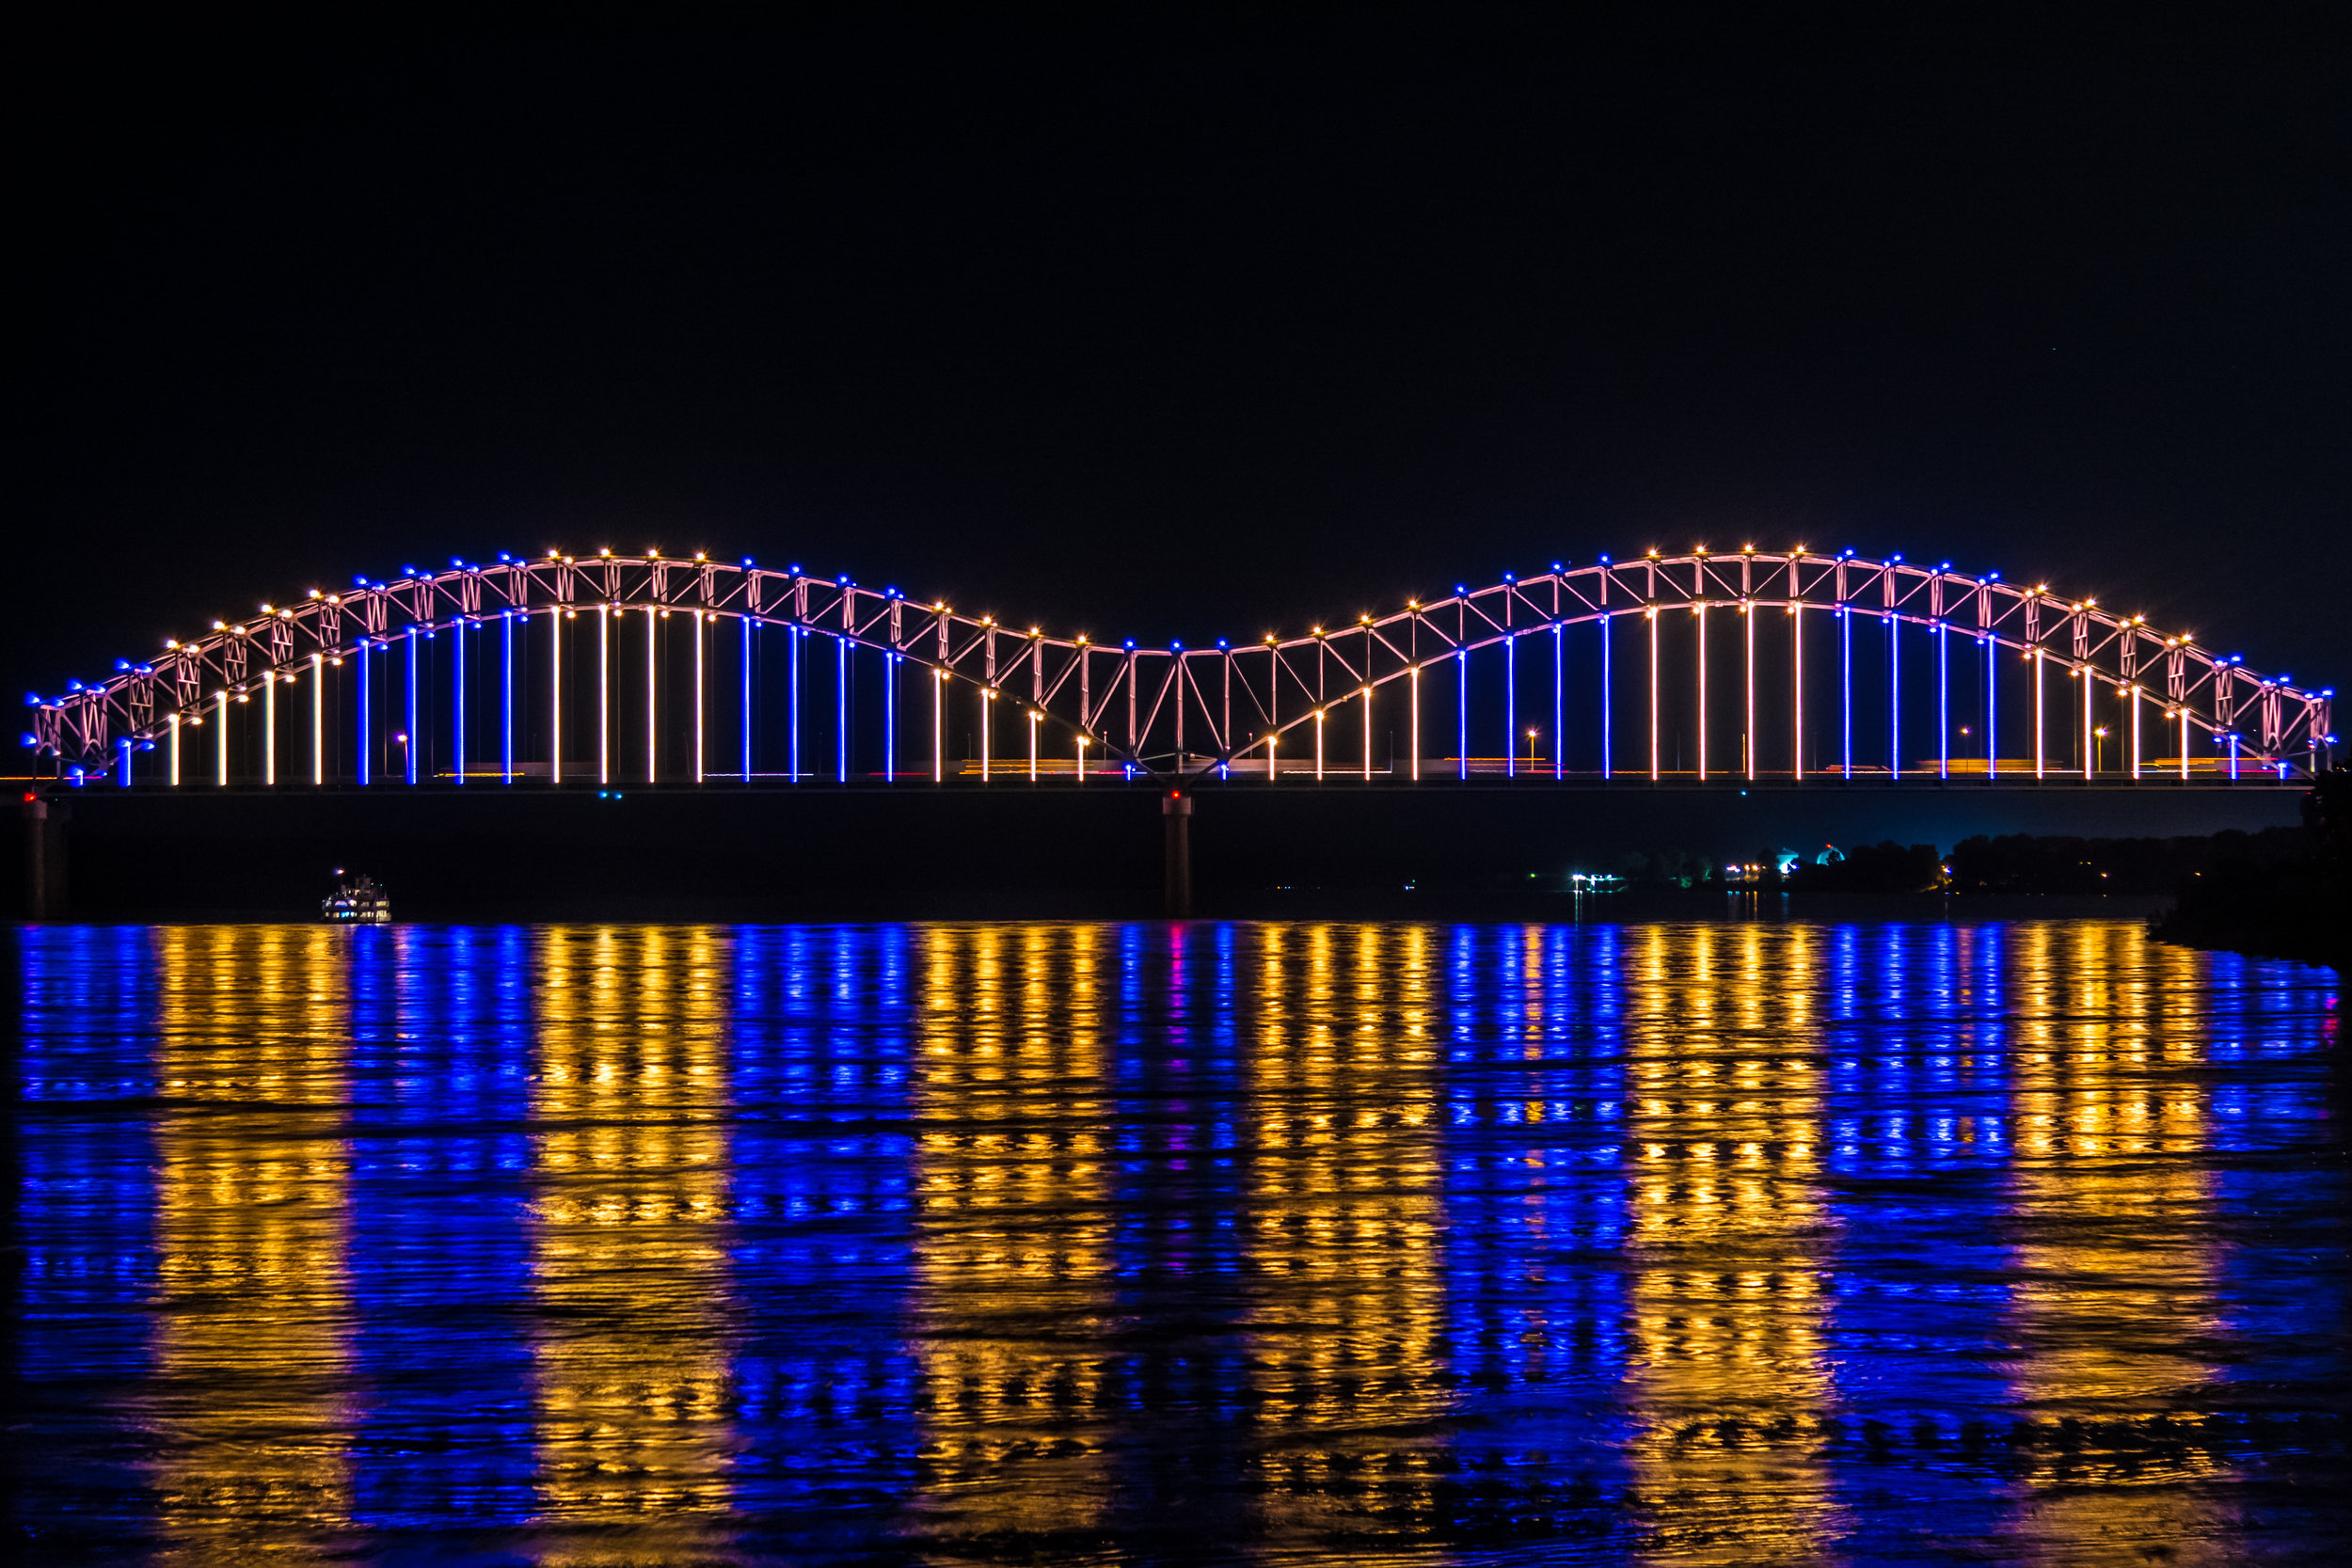 Hernando de Soto Bridge - Opened in 1973 and illuminated with its original bulb lights on September 5, 1986 by visionary local philanthropists, the Hernando De Soto Bridge has represented the iconic marquee of Memphis' riverfront for decades and has been used countless times in nonprofit, corporate, and tourism promotions.